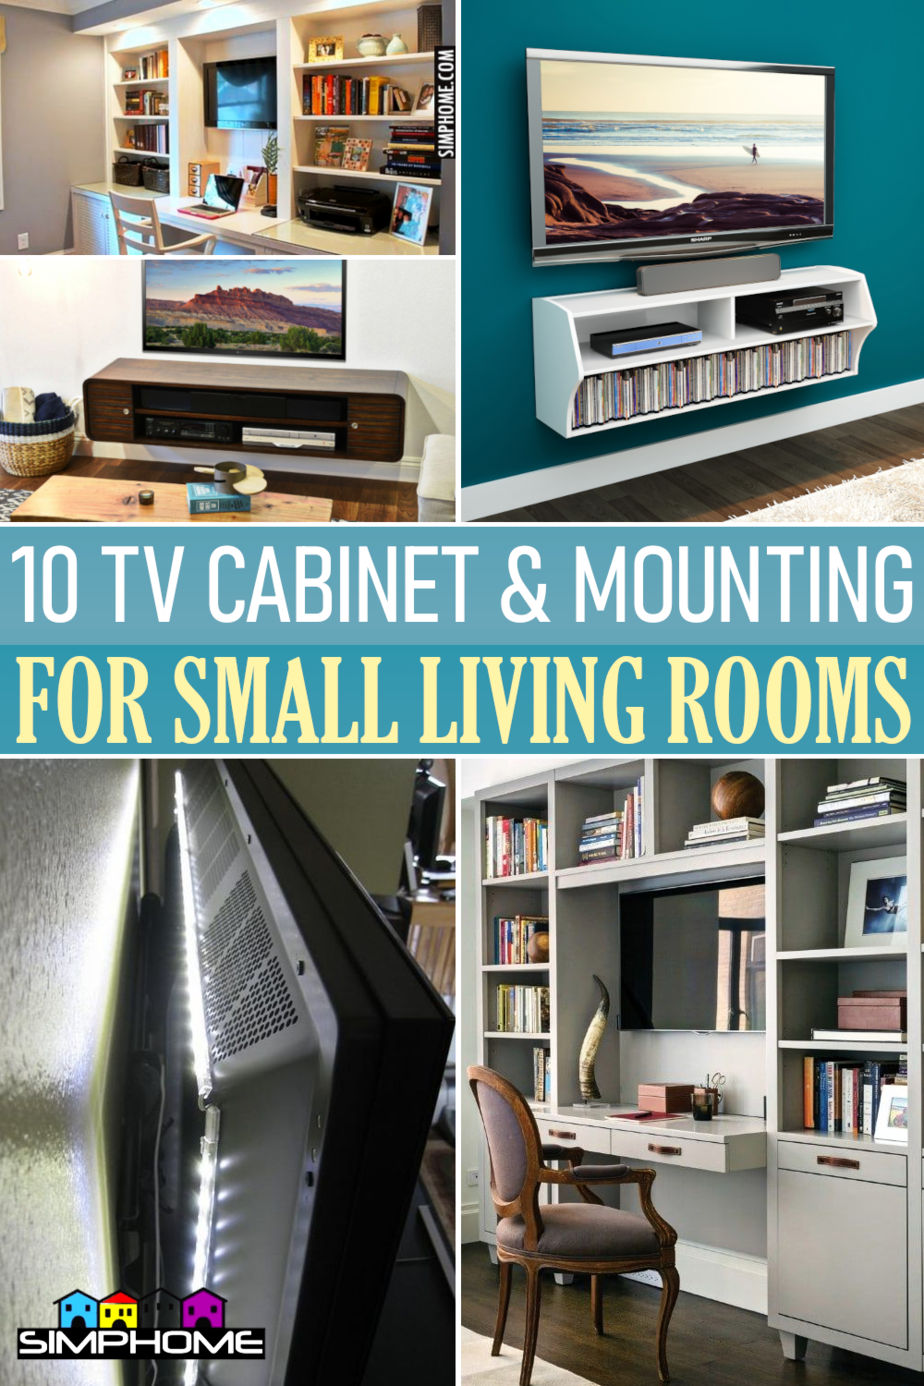 10 TV Cabinet Ideas and Mounting For Small Living Room by Simphome.comFeatured